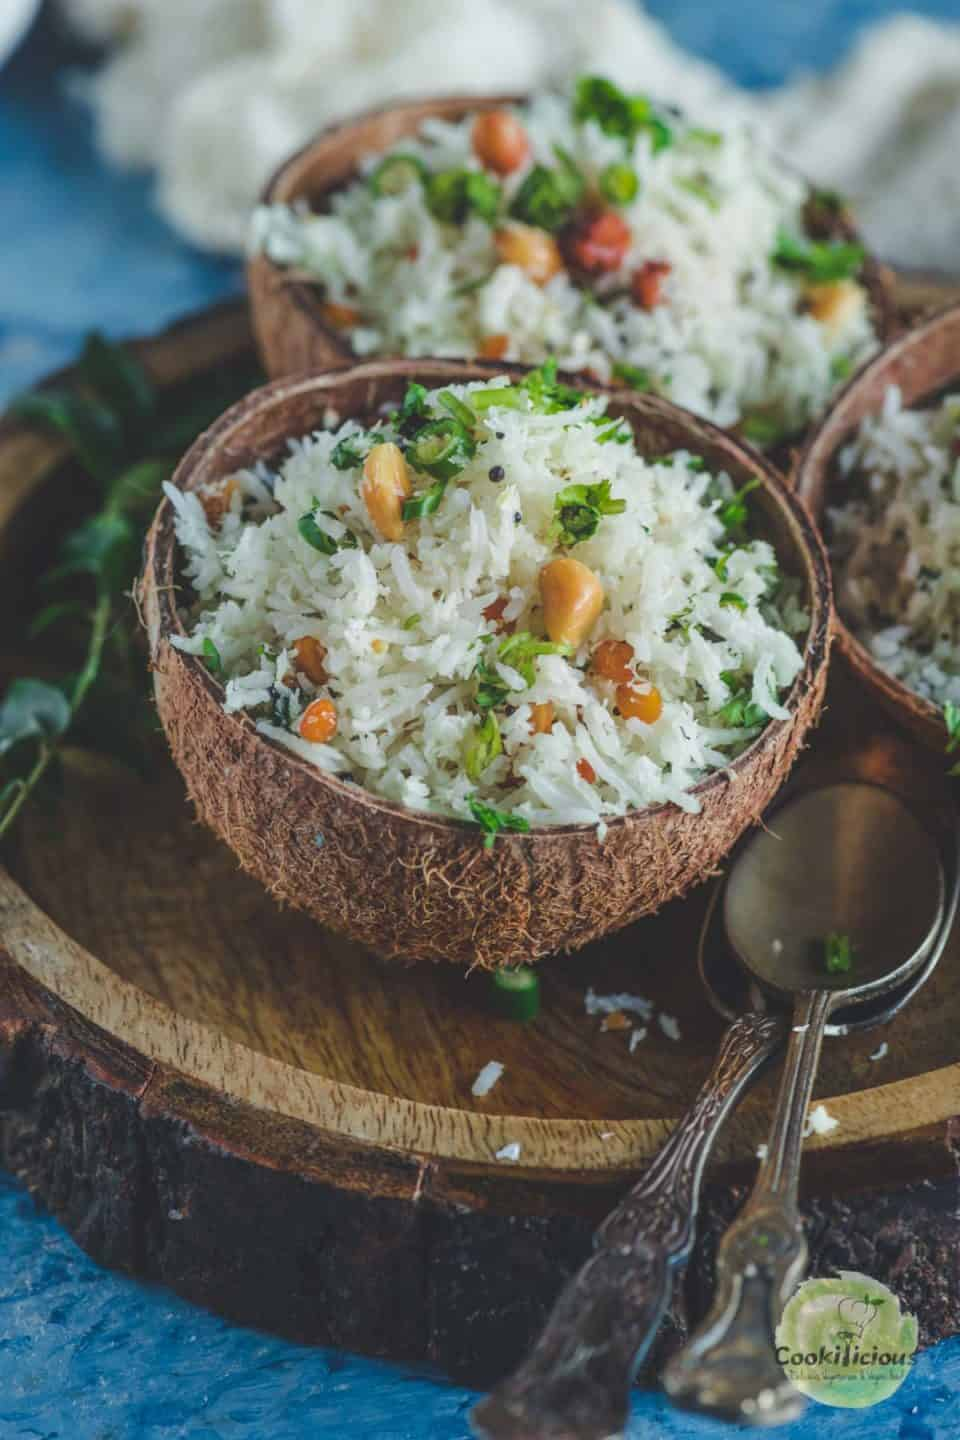 South Indian Coconut Rice served in a coconut shell